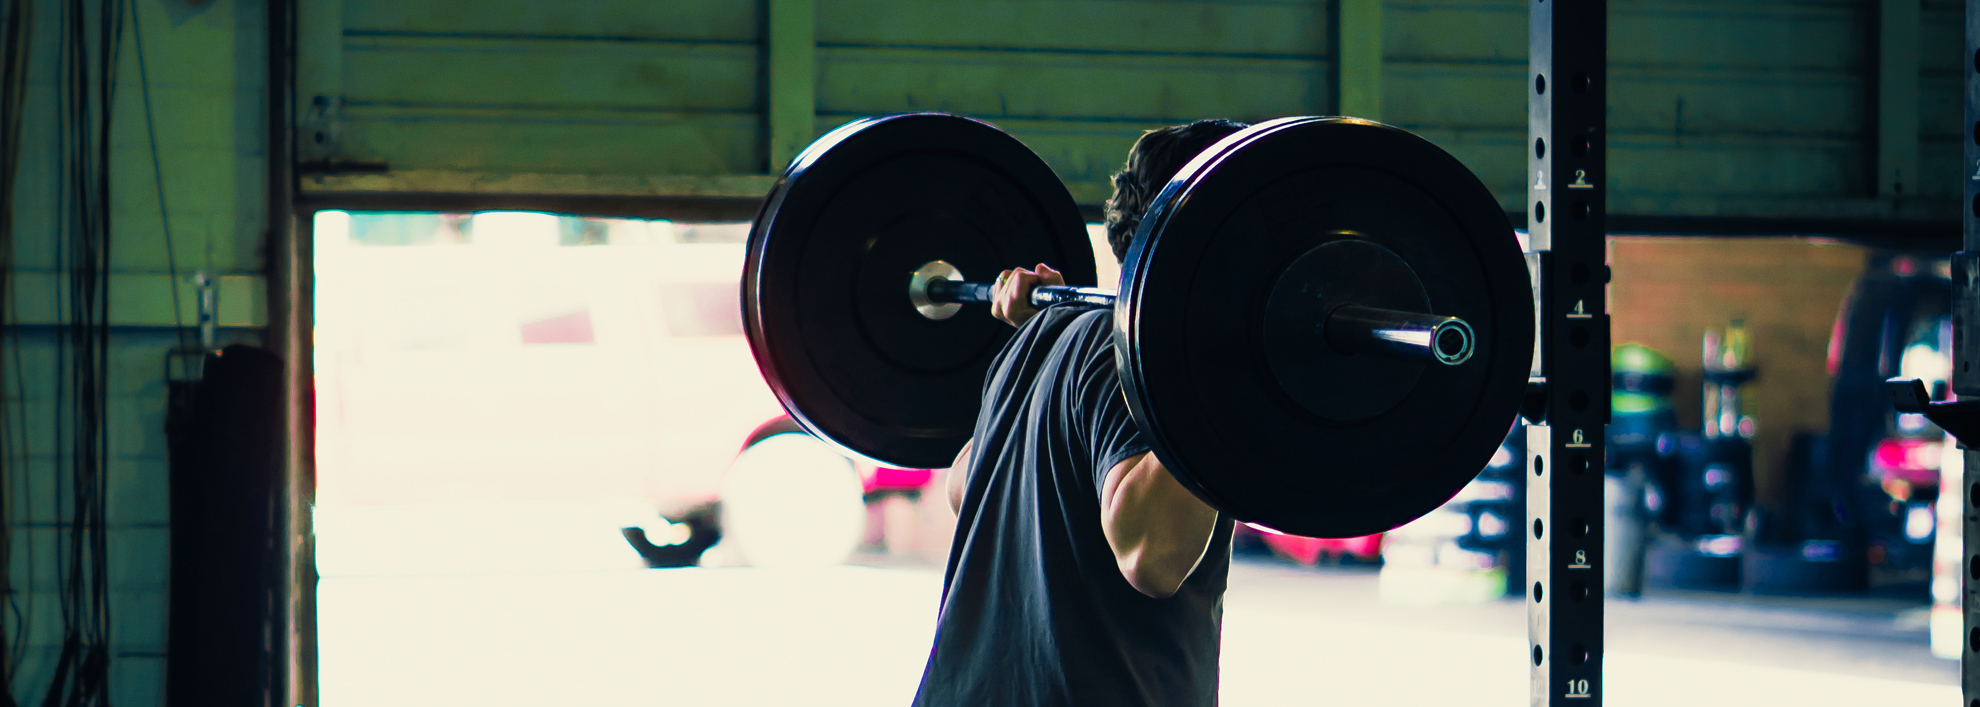 Near the Portland or Clackamas OR area? Drop in at CrossFit Immense for a workout!